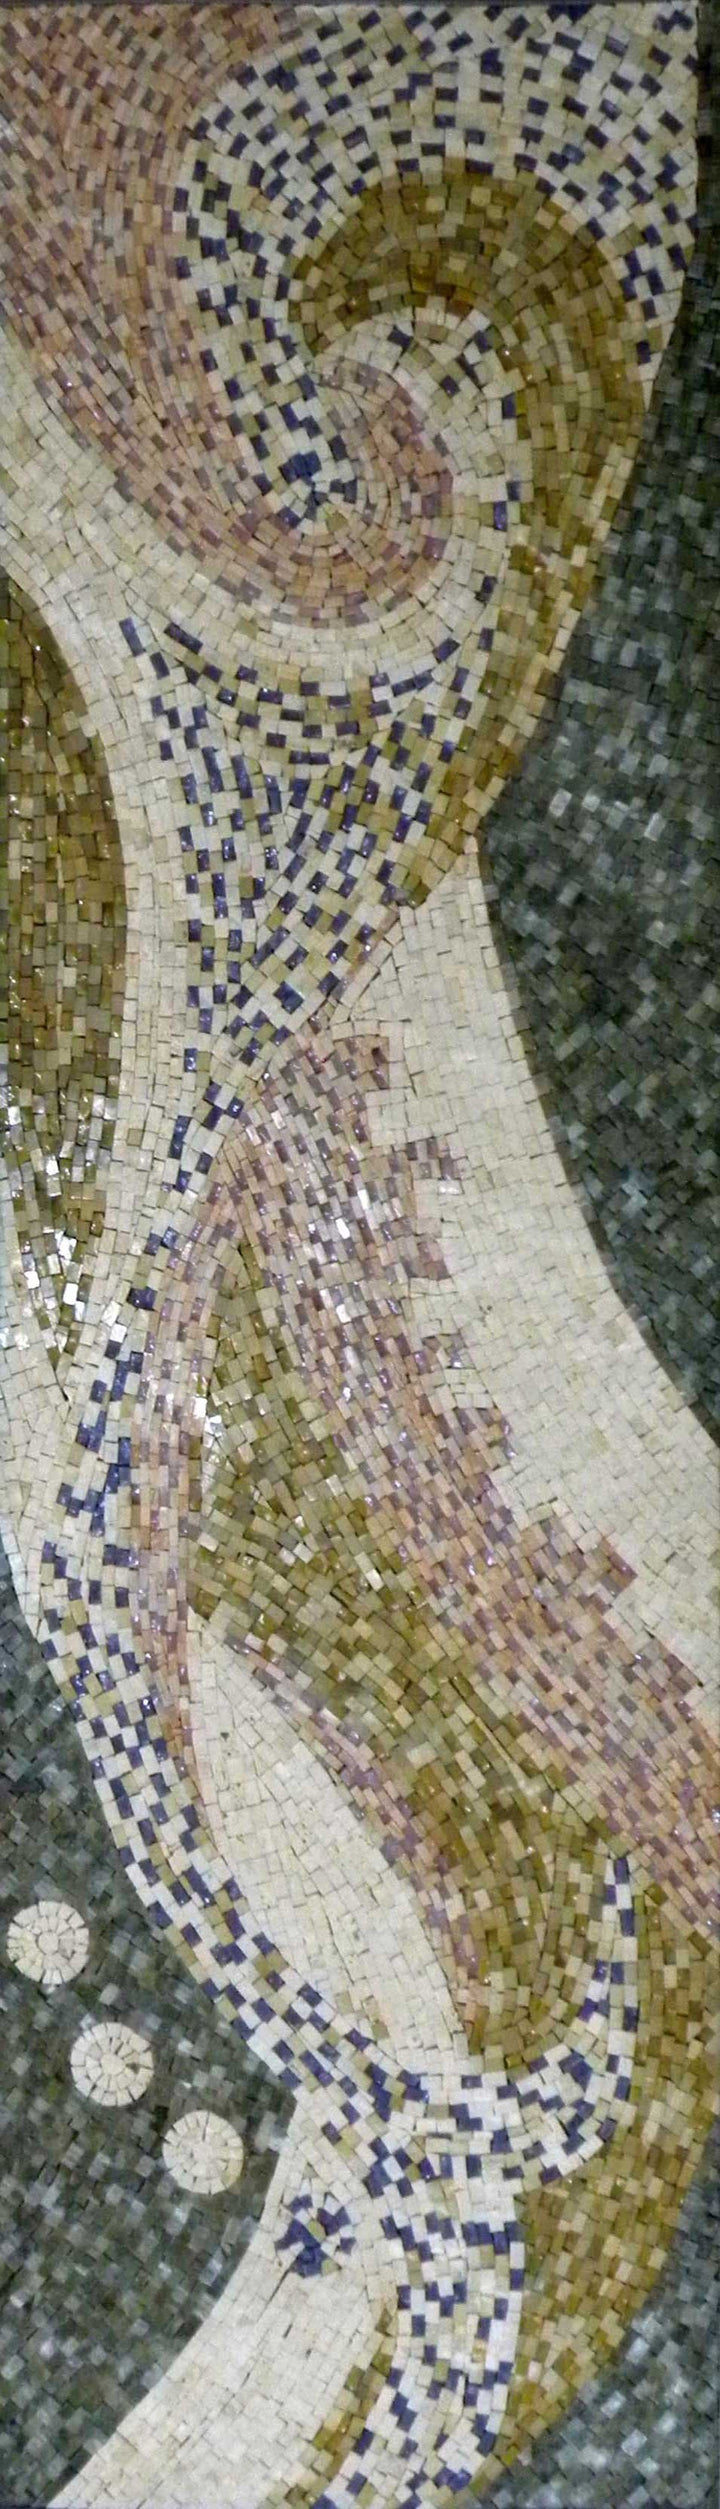 Impressionistic Flow - Abstract Mosaic Pattern